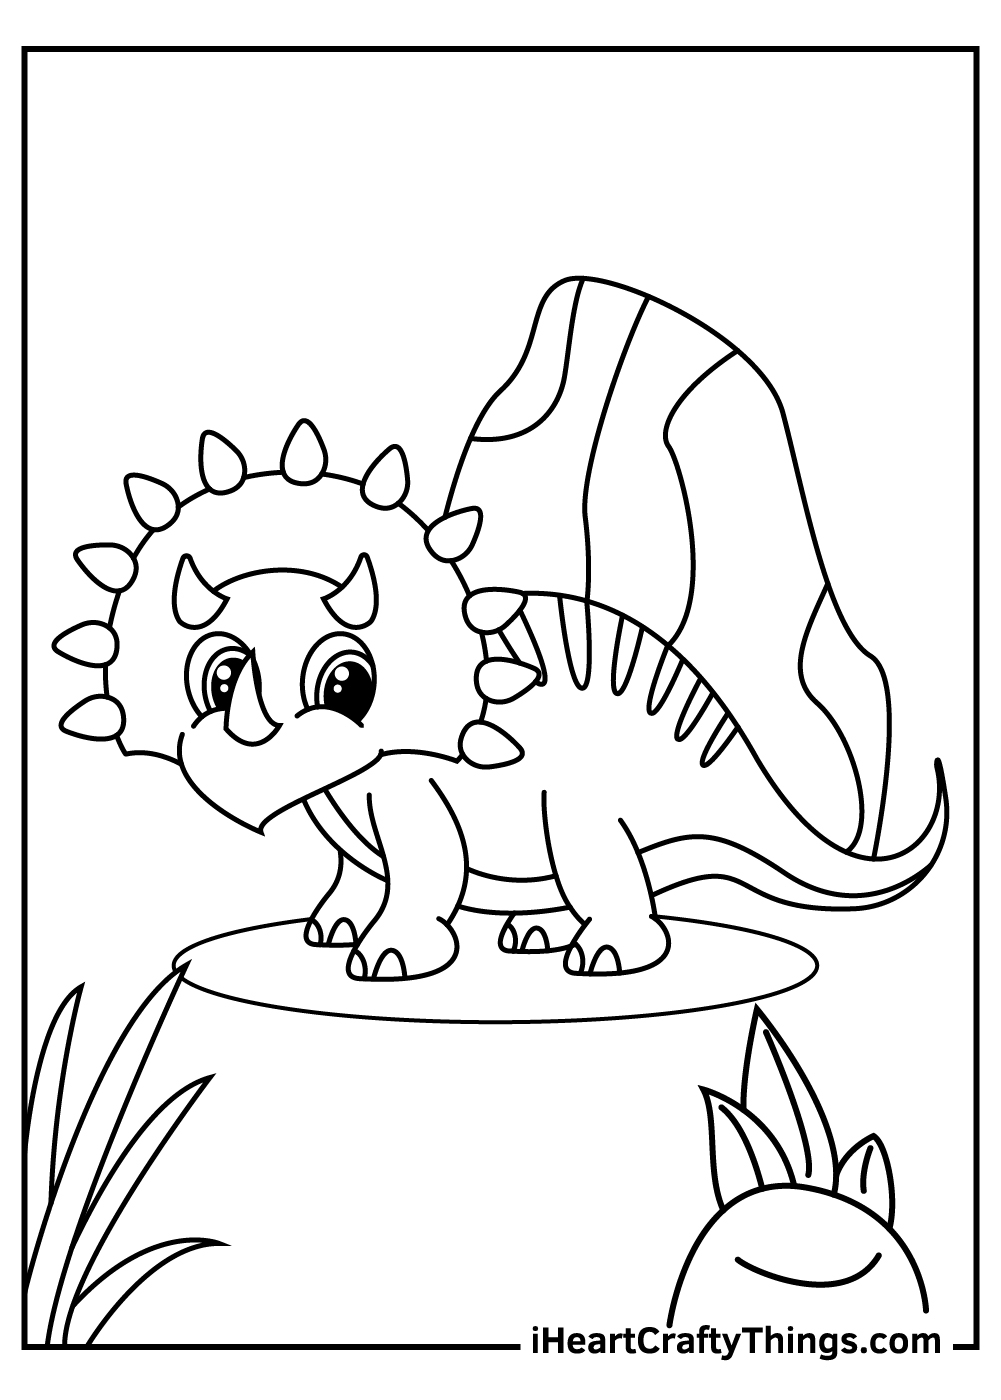 baby dinosaur triceratops coloring pages